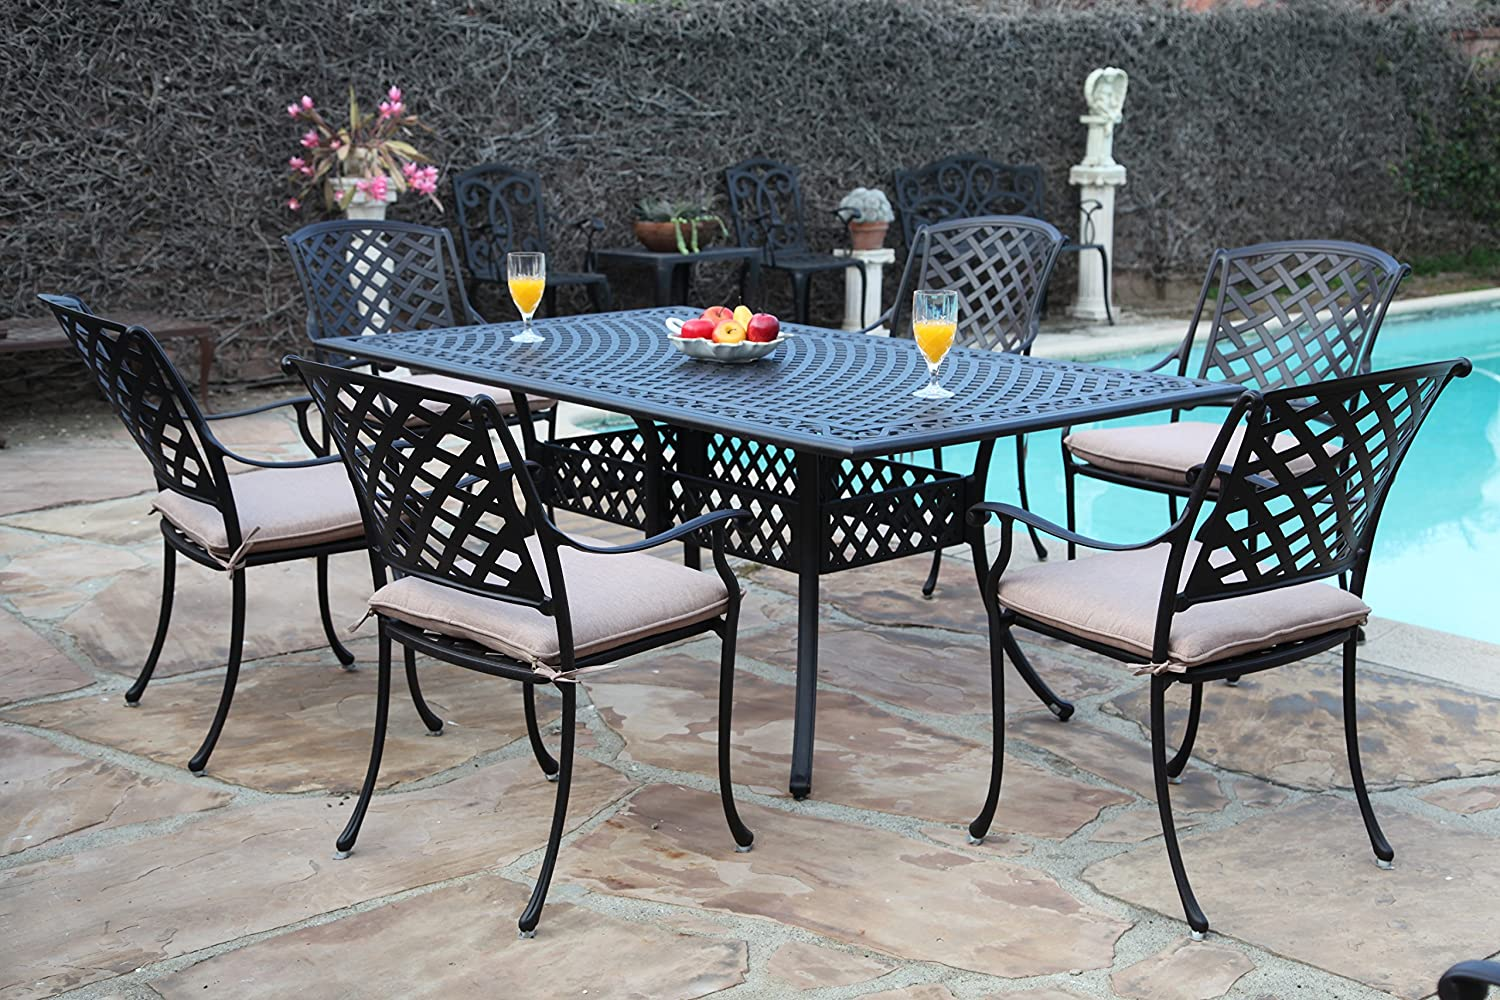 Aluminum patio furniture Lightweight Amazoncom Cbm Outdoor Cast Aluminum Patio Furniture Pc Dining Set E1 Cbm1290 Garden Outdoor Amazoncom Amazoncom Cbm Outdoor Cast Aluminum Patio Furniture Pc Dining